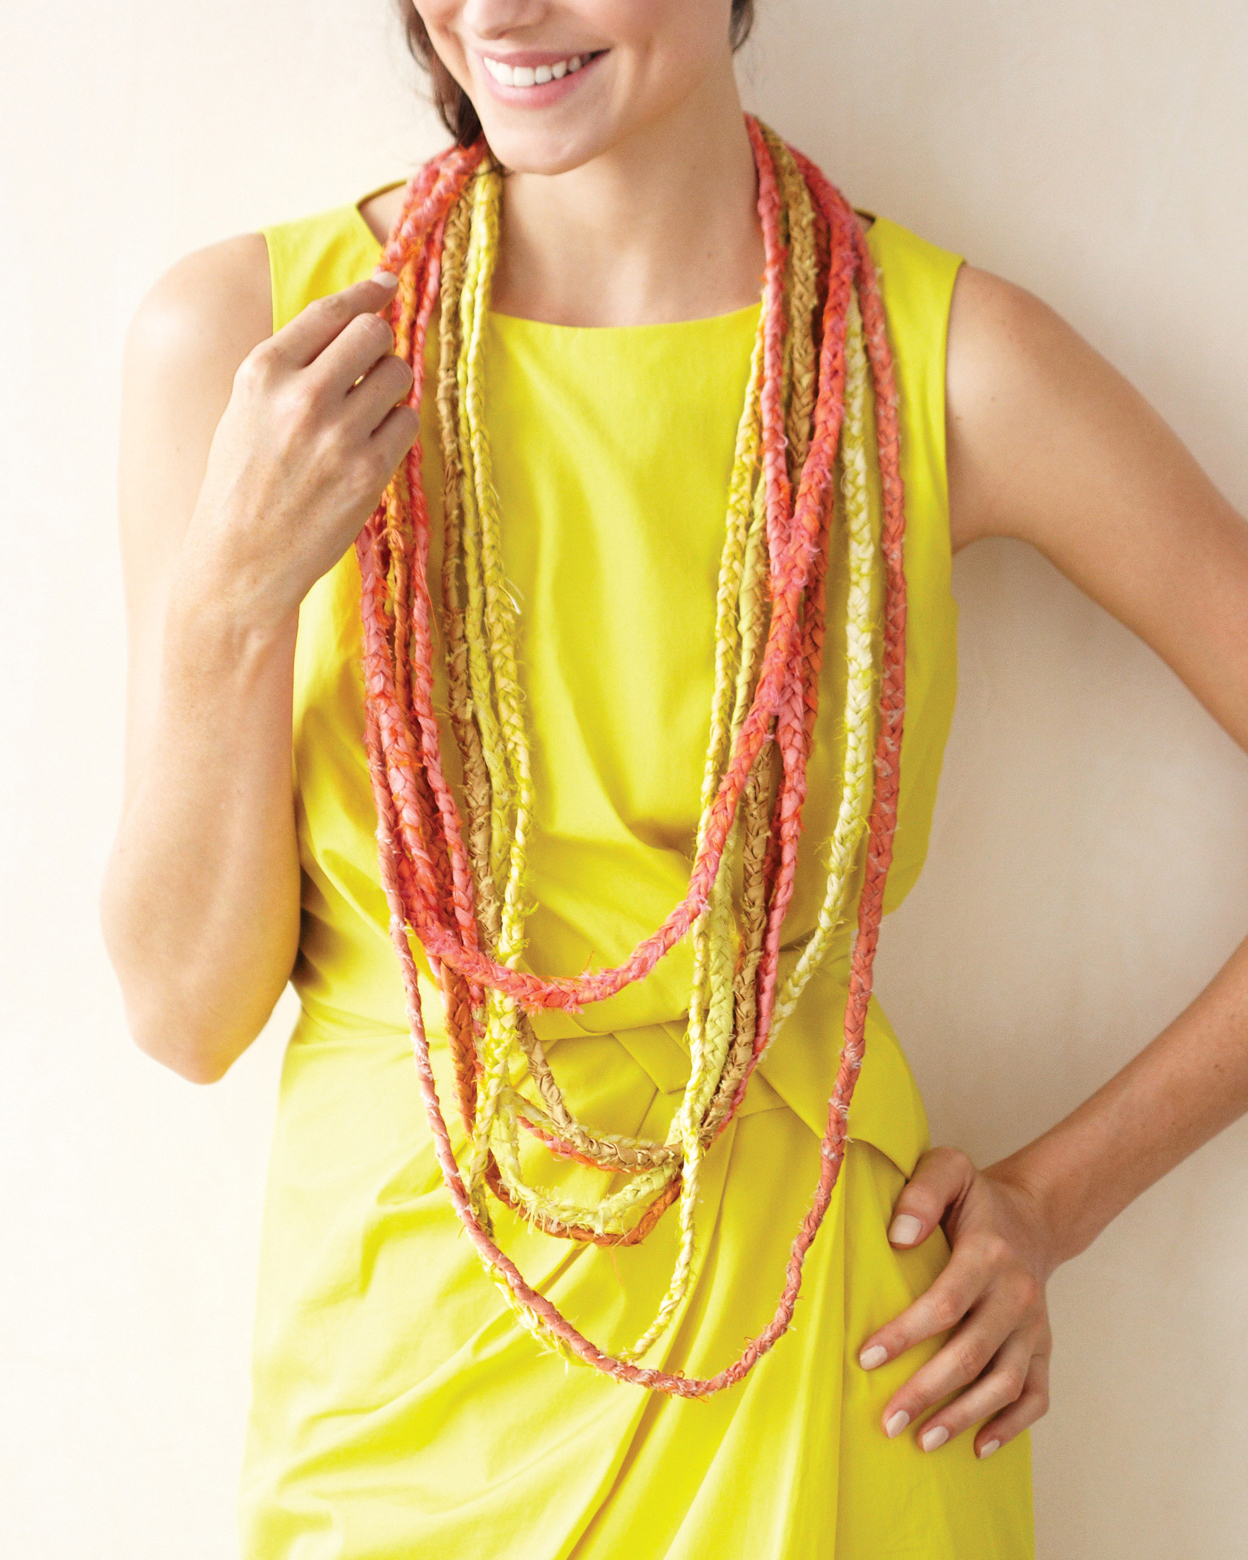 mld105793_0810_neckless17crop.jpg